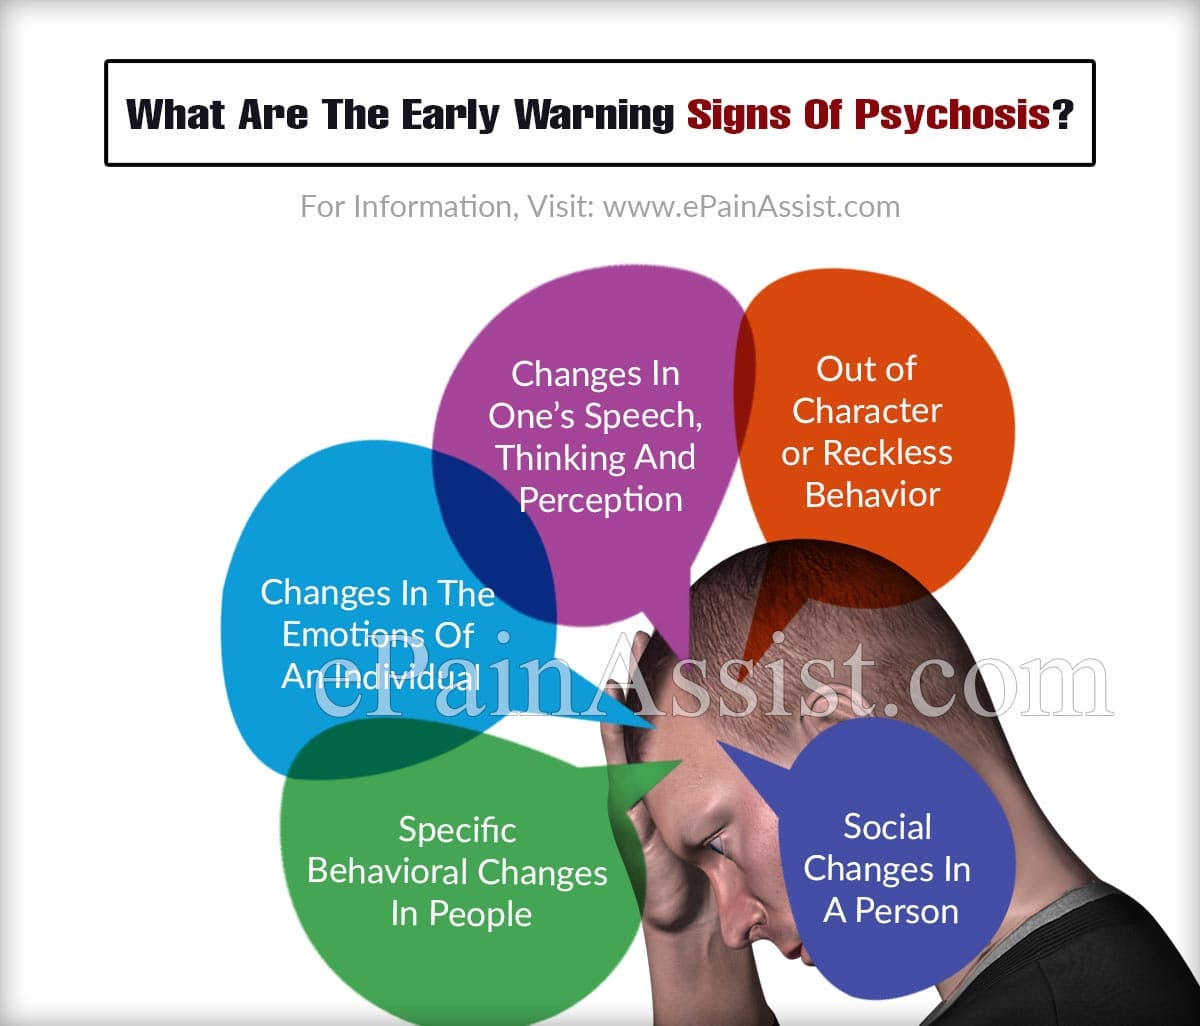 What Are The Early Warning Signs Of Psychosis?